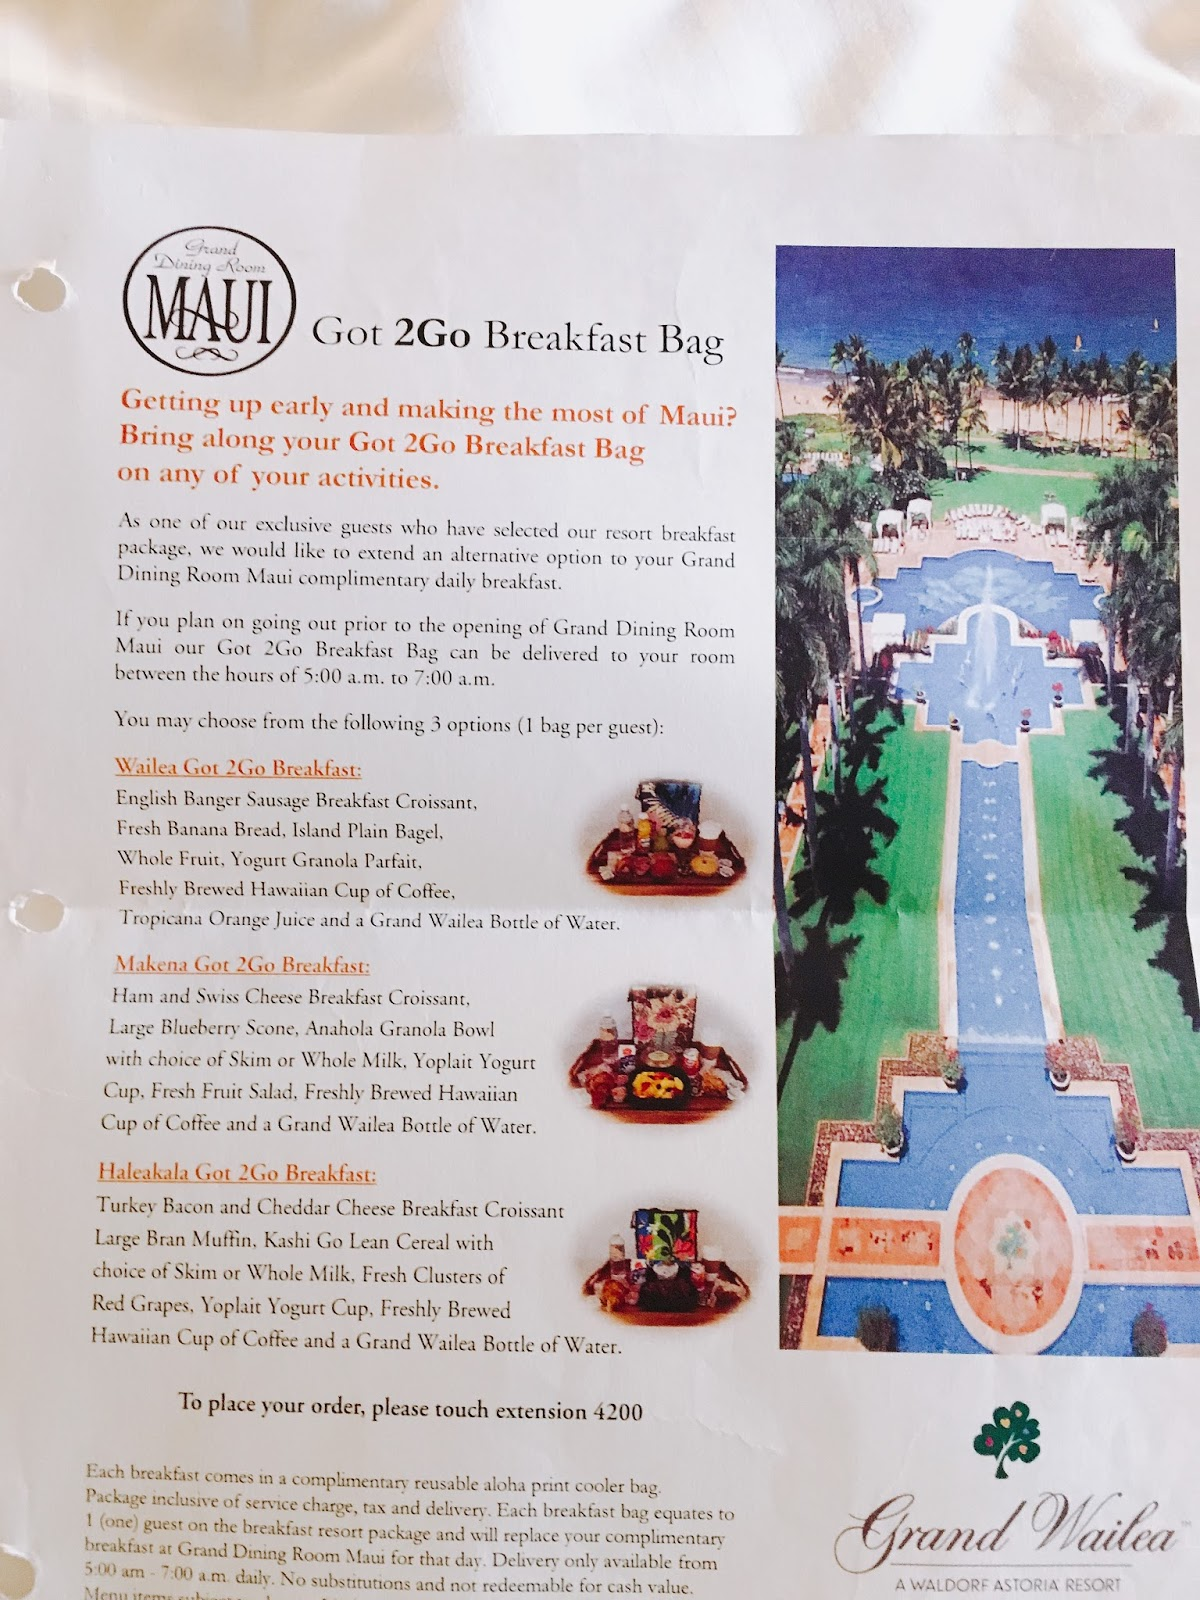 To Go breakfast information for the Grand Wailea